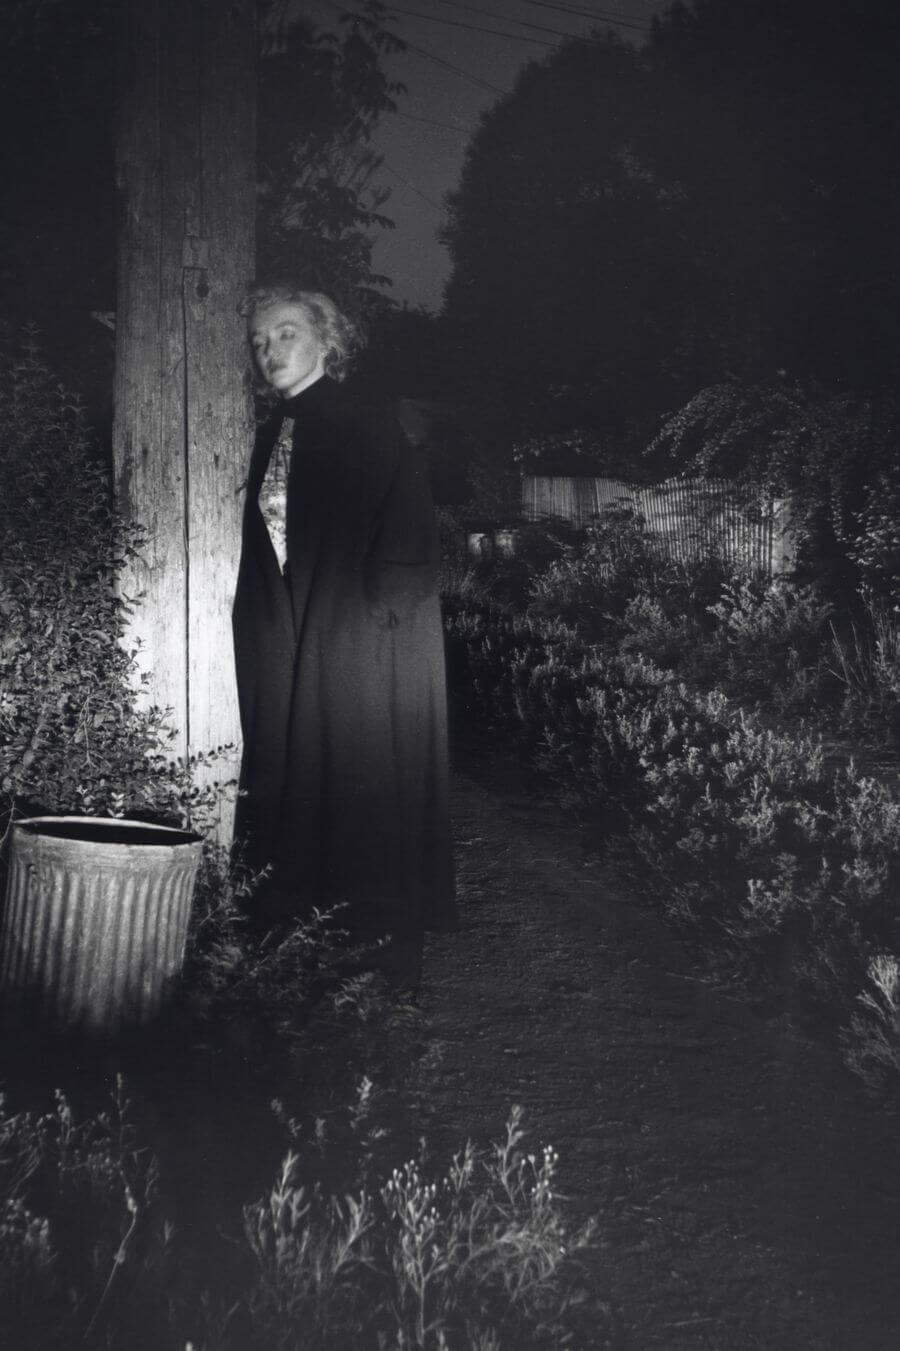 Marilyn Monroe in an Alley at Night, Beverly Hills, CA, 1953